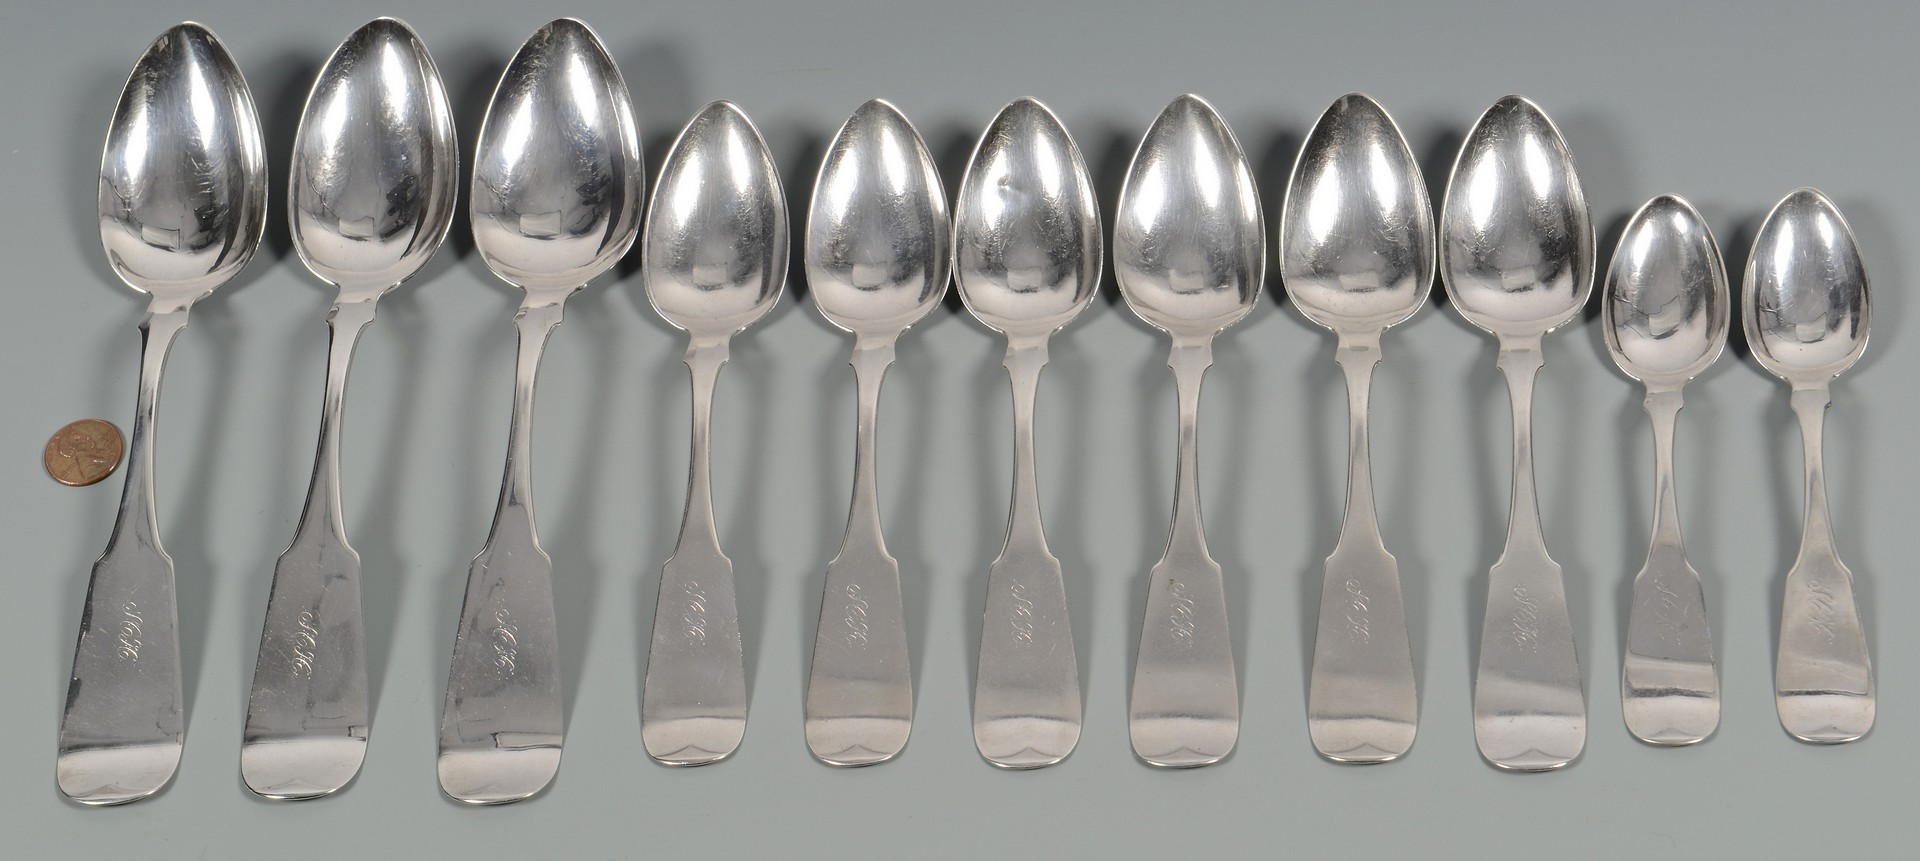 Lot 57: 11 Sehorn TN Coin Silver Spoons